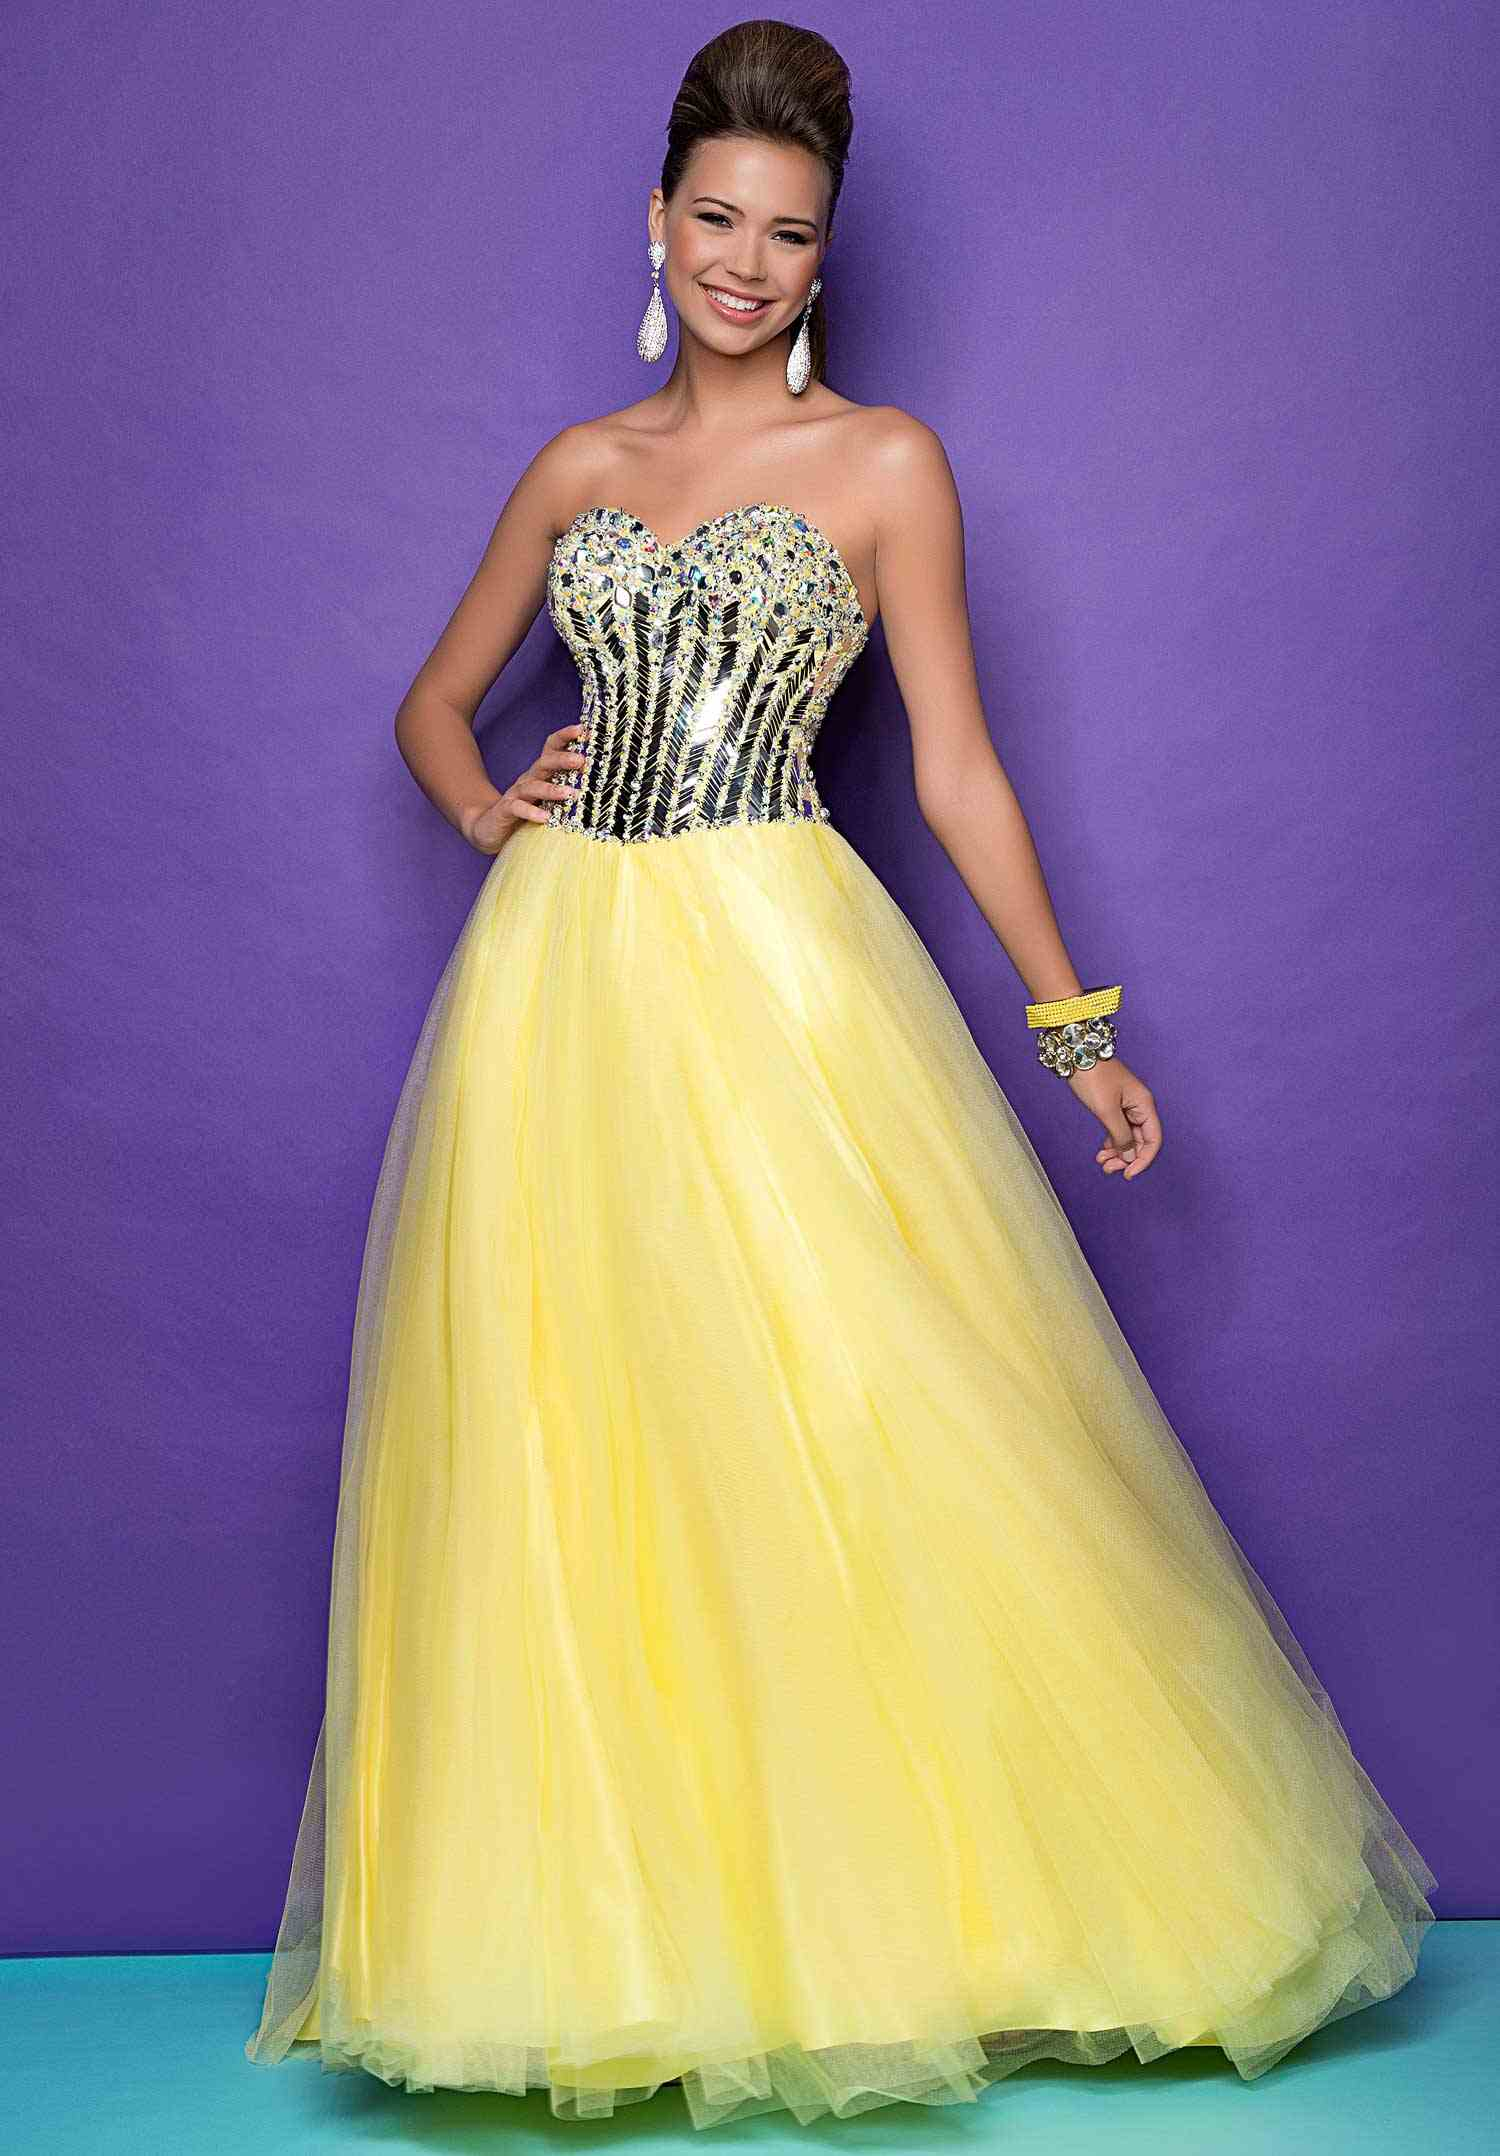 Lee prom dress guaranteed in stock quinceanera long hairstyles Ceremony shoes bride rings hairstyles groom click share love